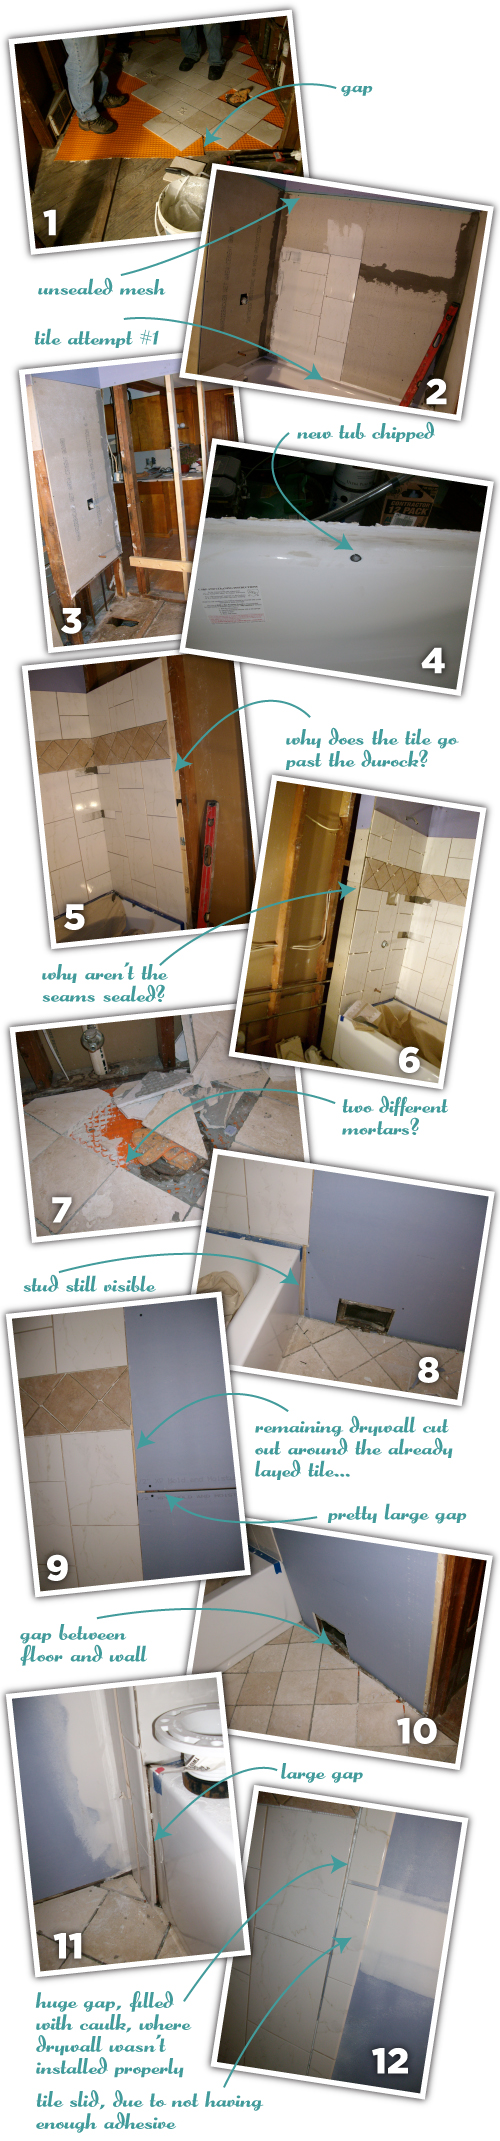 bathroom decale part 1